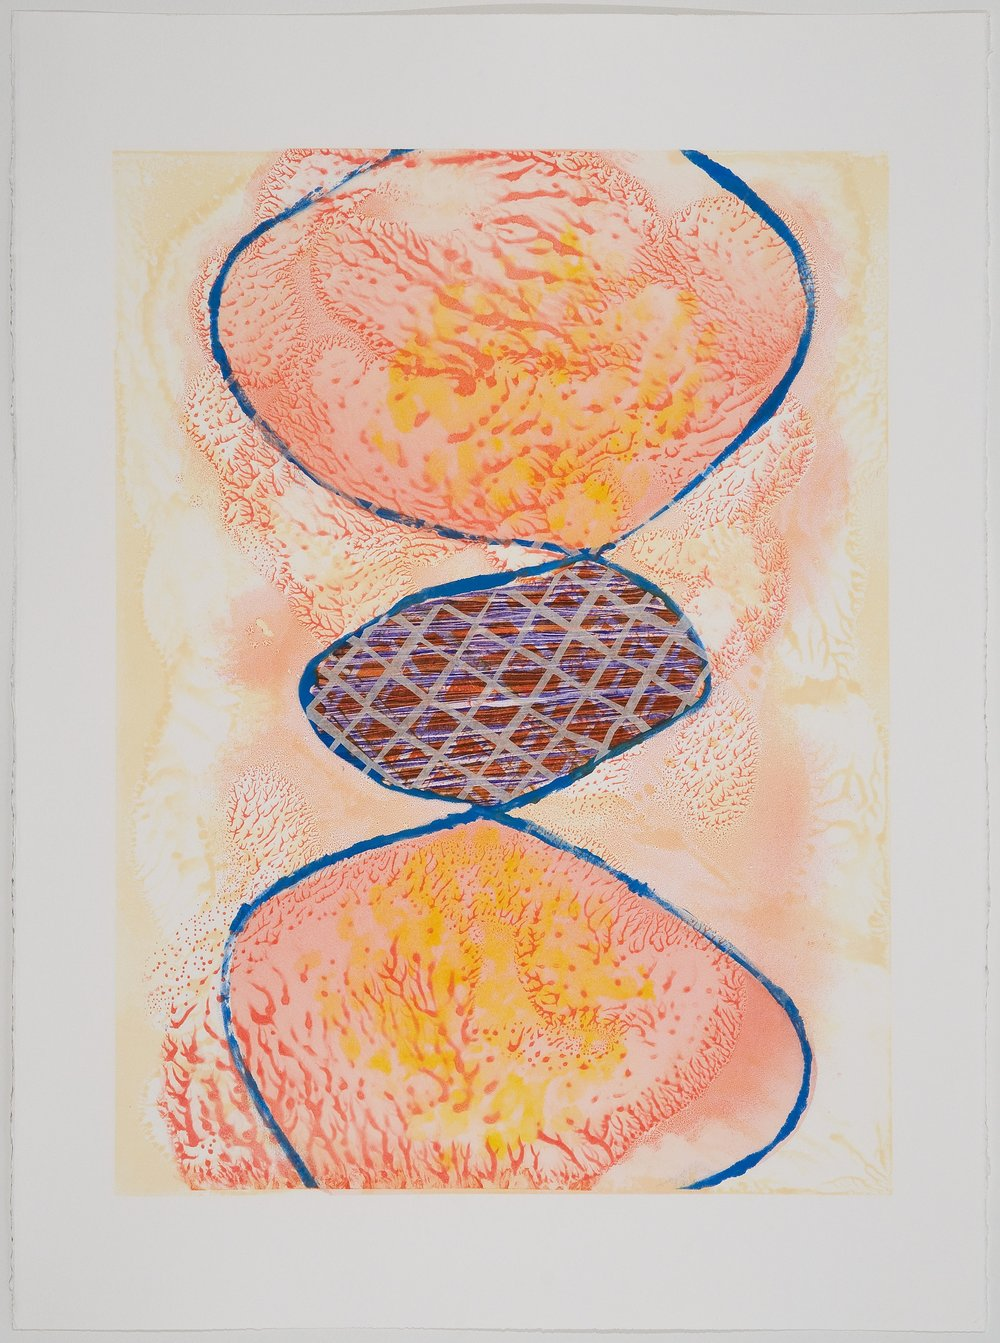 Untitled (VI) , 2010 Monotype Image Size: 18 x 26 inches Paper Size: 22 x 30 inches Series of 6